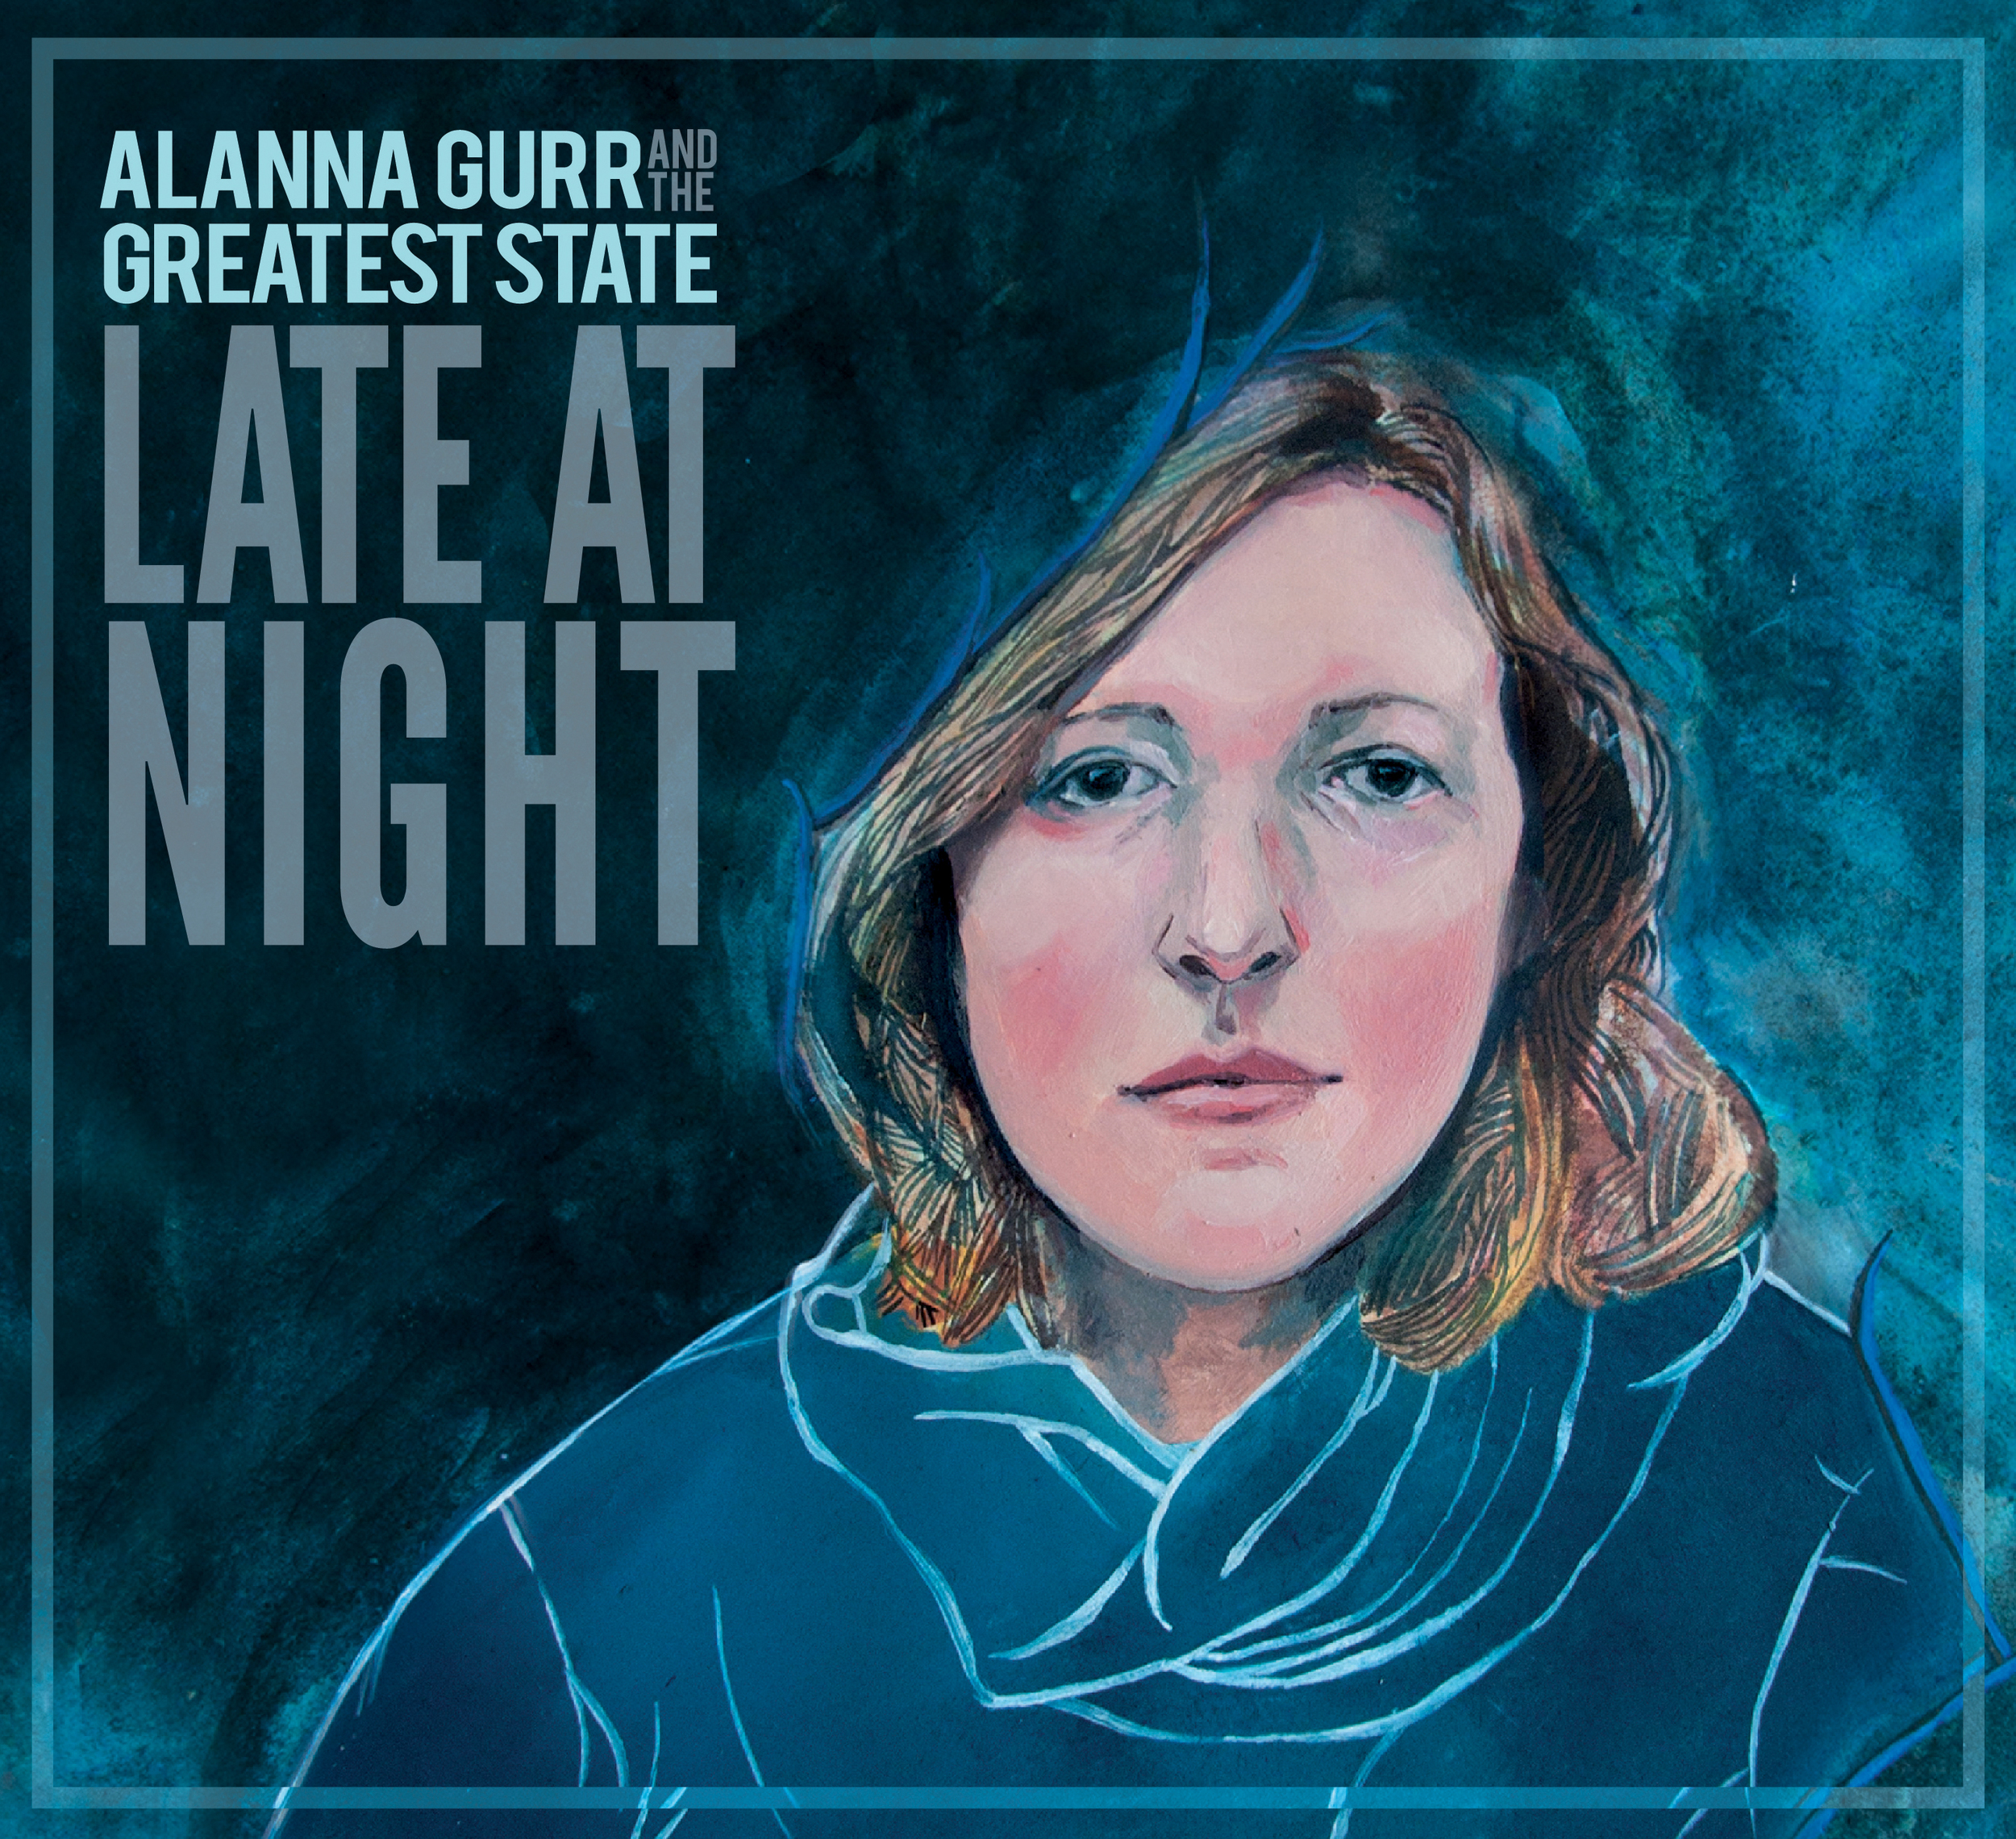 Late At Night by Alanna Gurr and the Greatest State